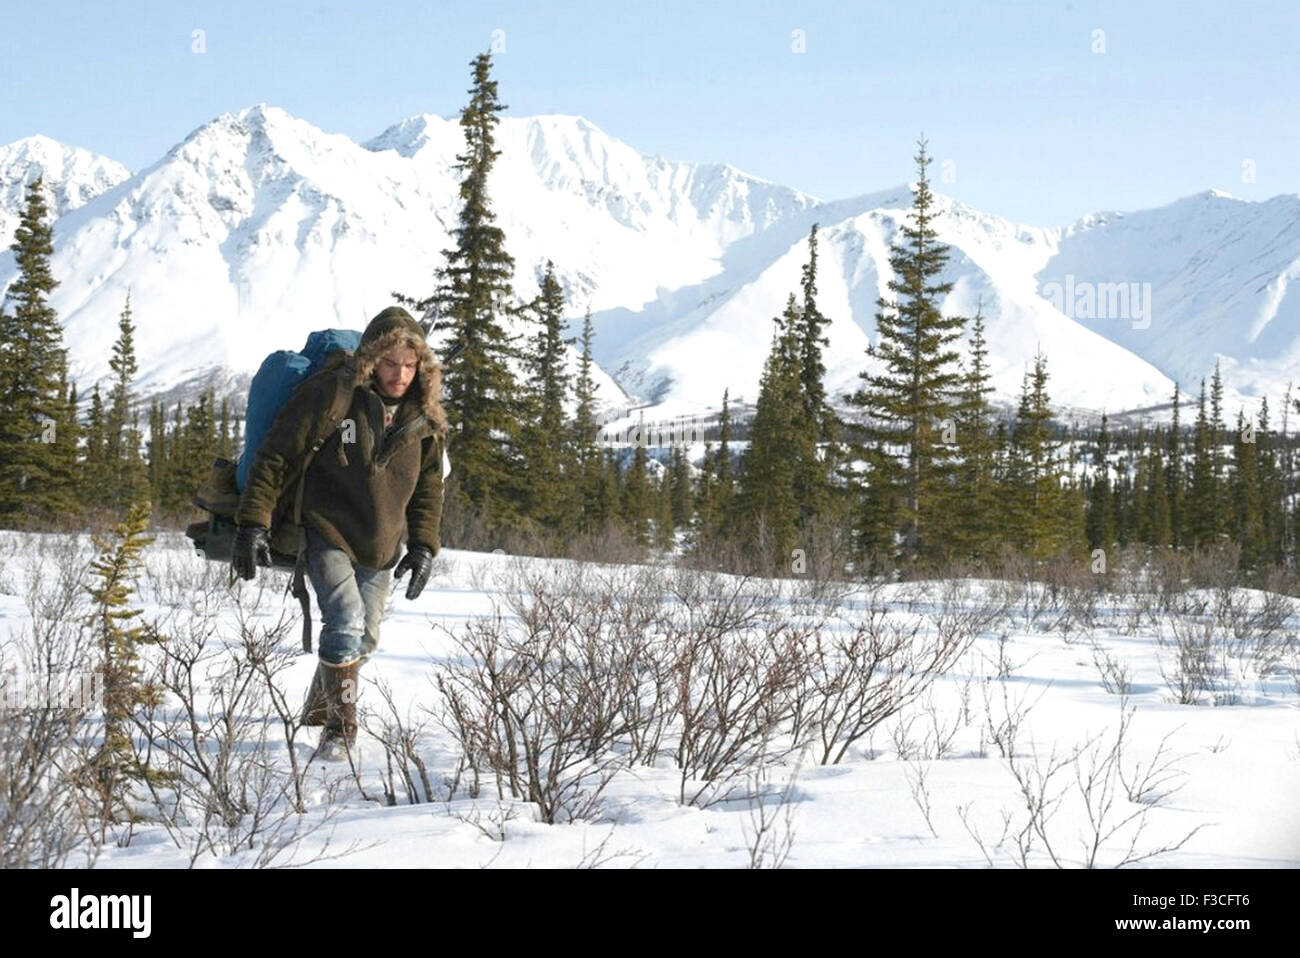 INTO THE WILD 2007 Paramount Vantage film with Emile Hirsch - Stock Image